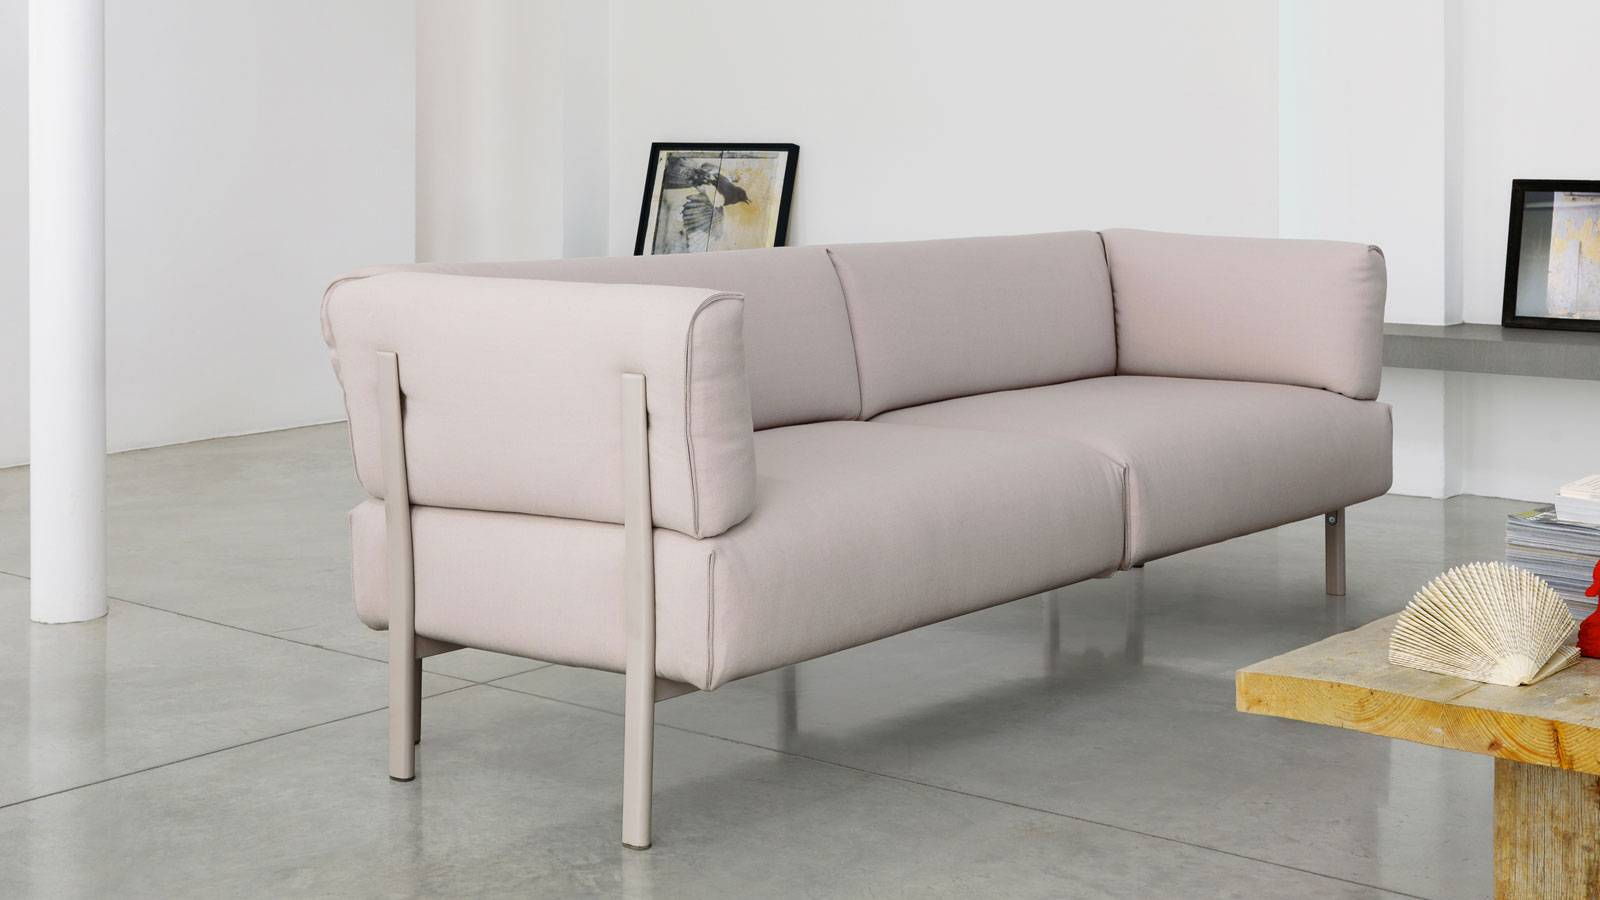 upholstered contemporary furniture by PearsonLloyd for Alias